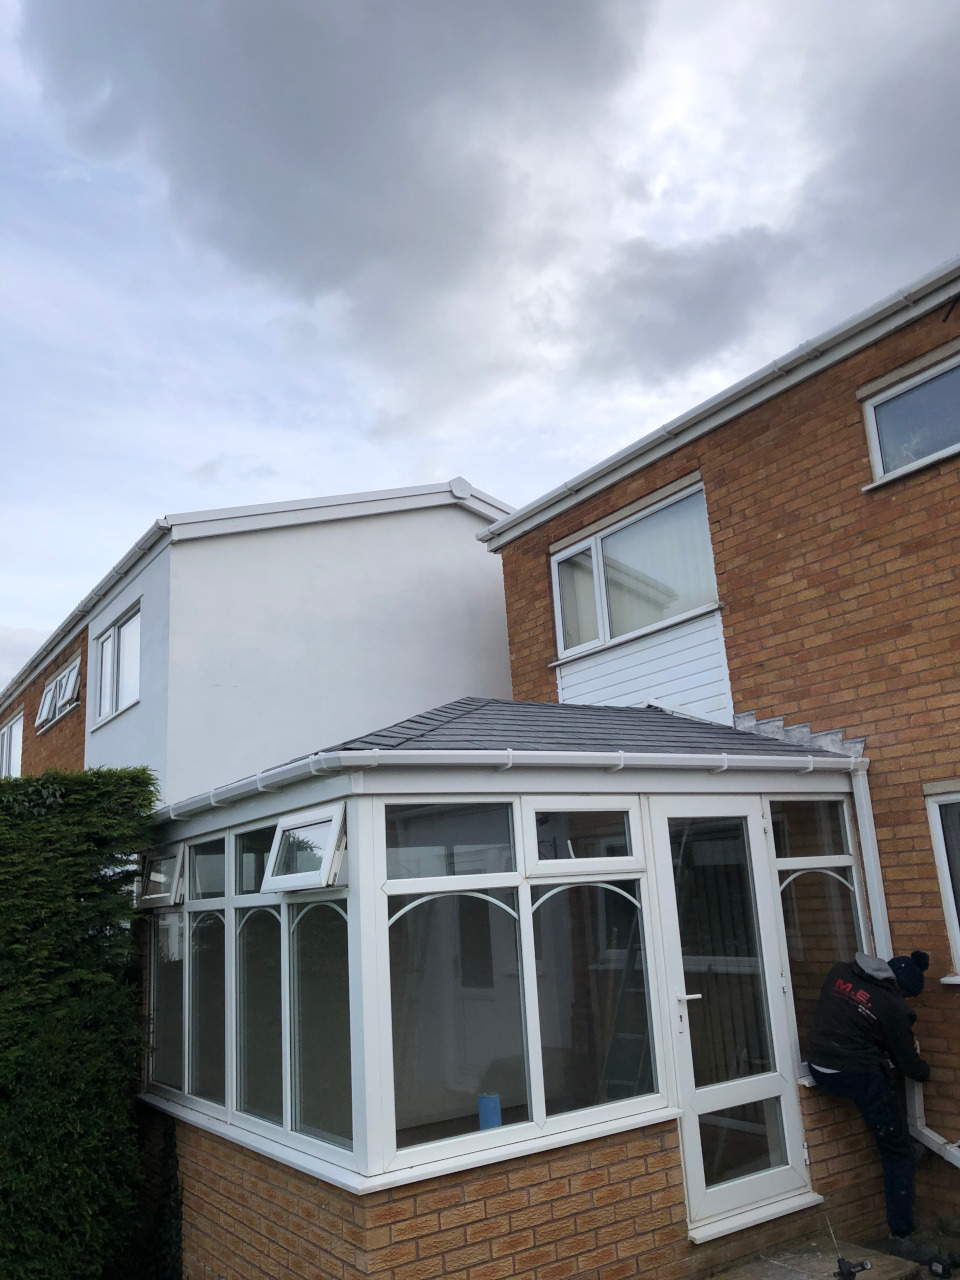 Installation of warm pitched roof on conservatory.